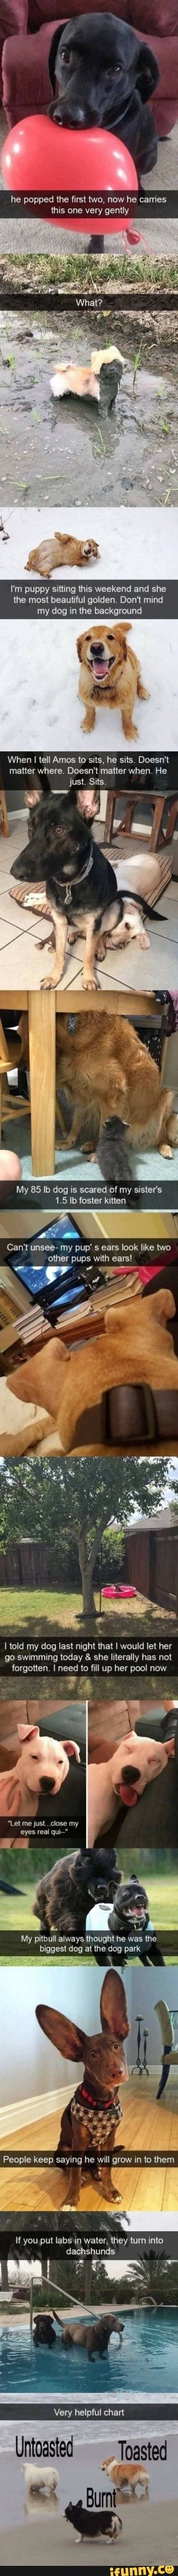 He popped the first two, now he carries this one very gently - iFunny :)